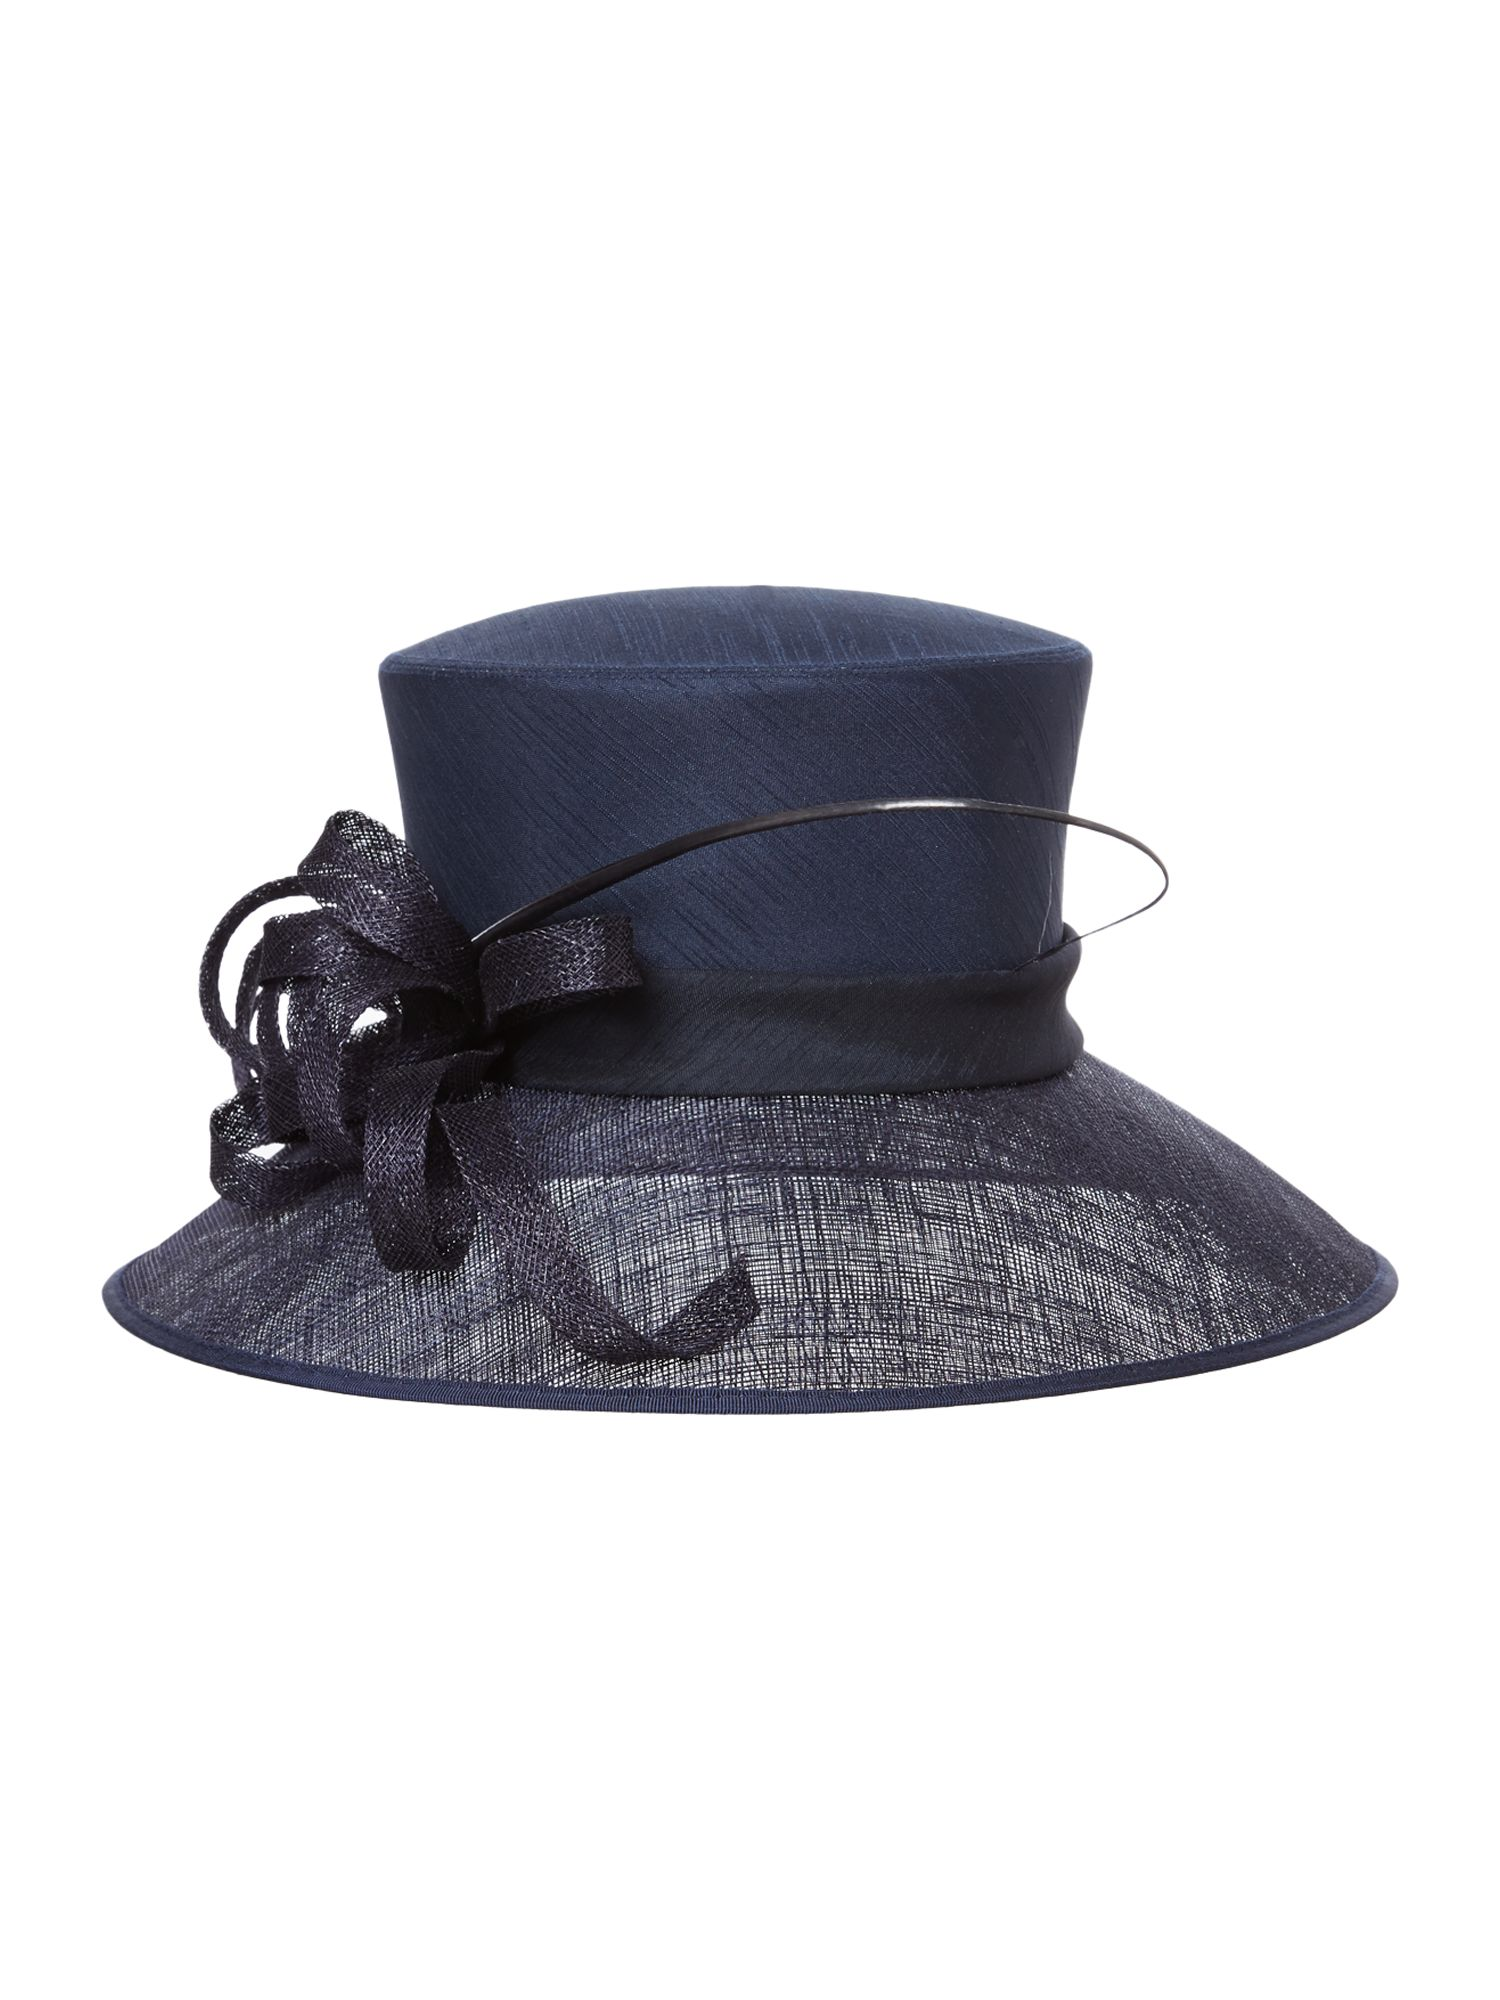 Earl shantung crown small brim hat